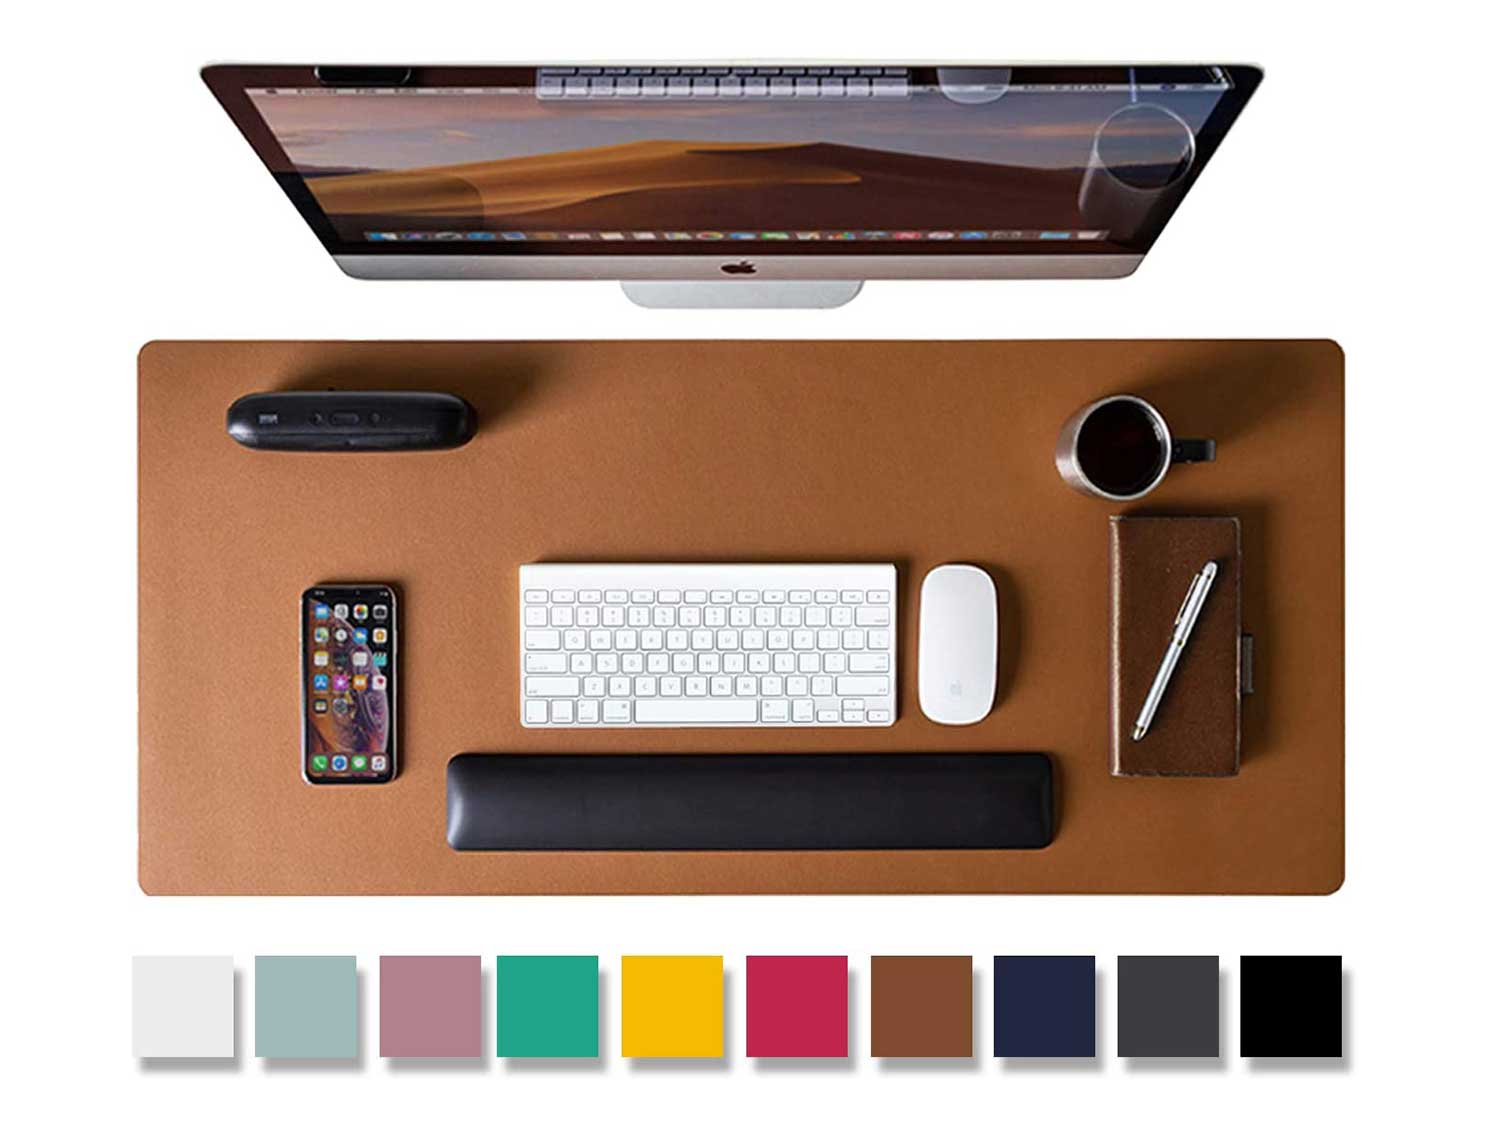 Leather Desk Pad Protector,Mouse Pad,Office Desk Mat, Non-Slip PU Leather Desk Blotter,Laptop Desk Pad,Waterproof Desk Writing Pad for Office and Home (Brown,31.5